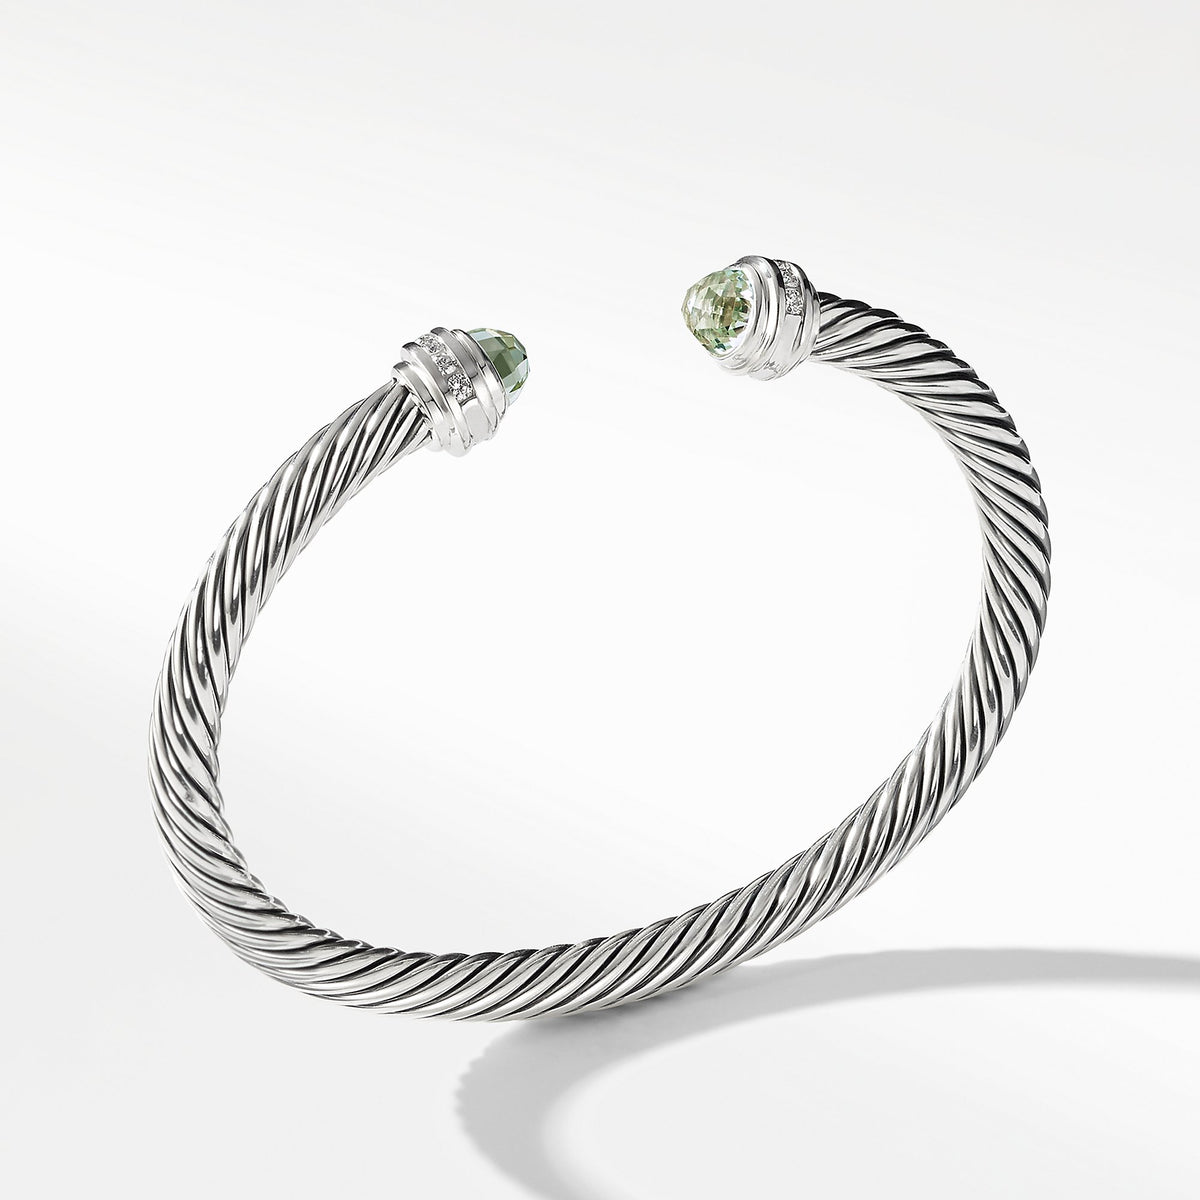 Bracelet with Prasiolite and Diamonds